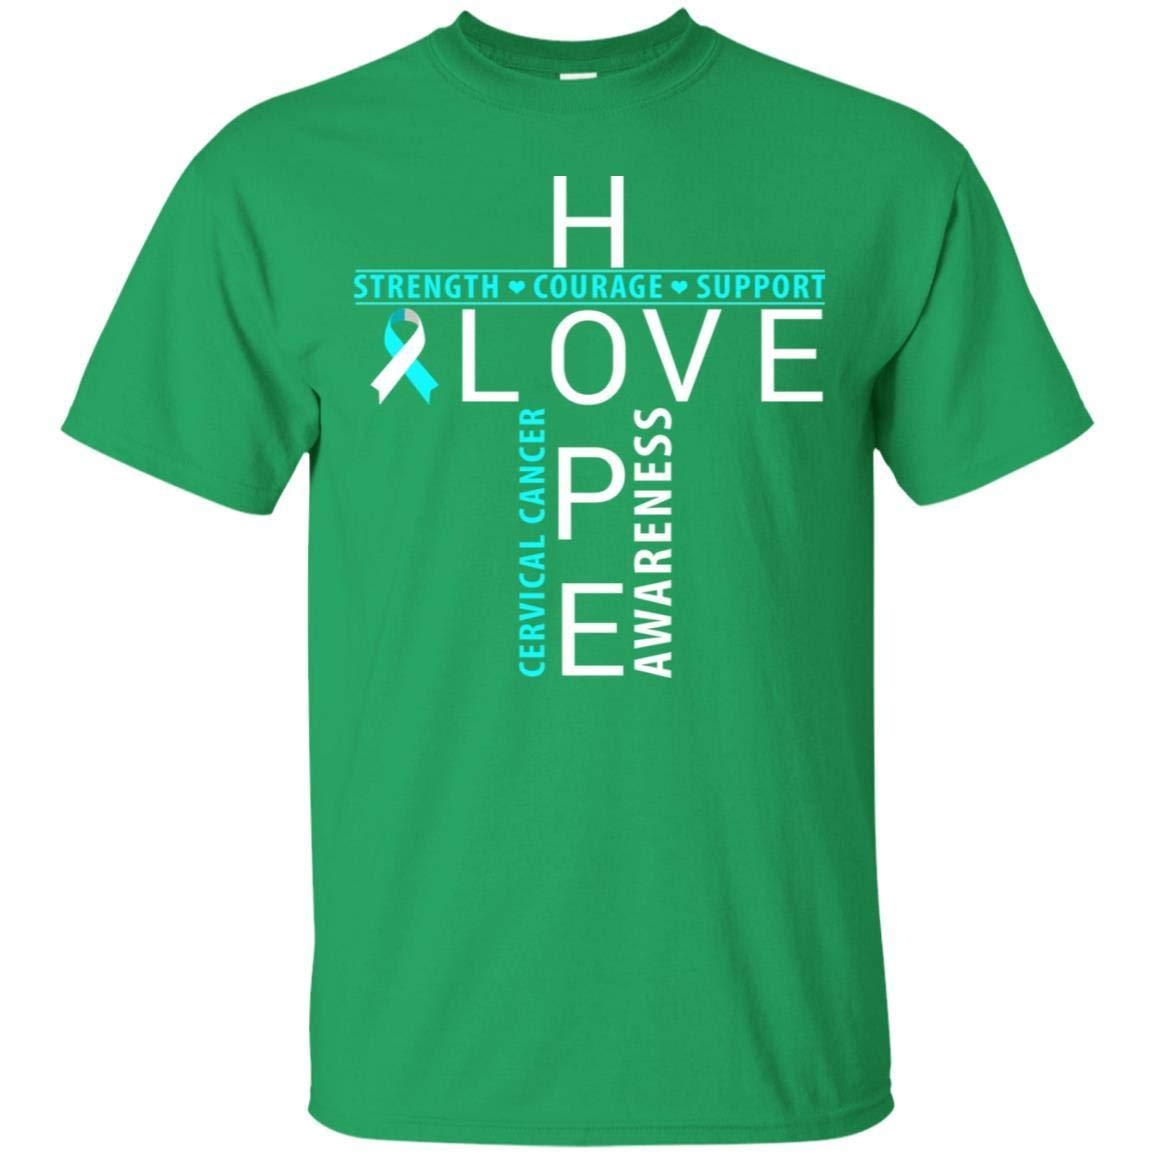 Teelesto Hope Love Strength Courage Support Cervical Cancer Awareness Shirt